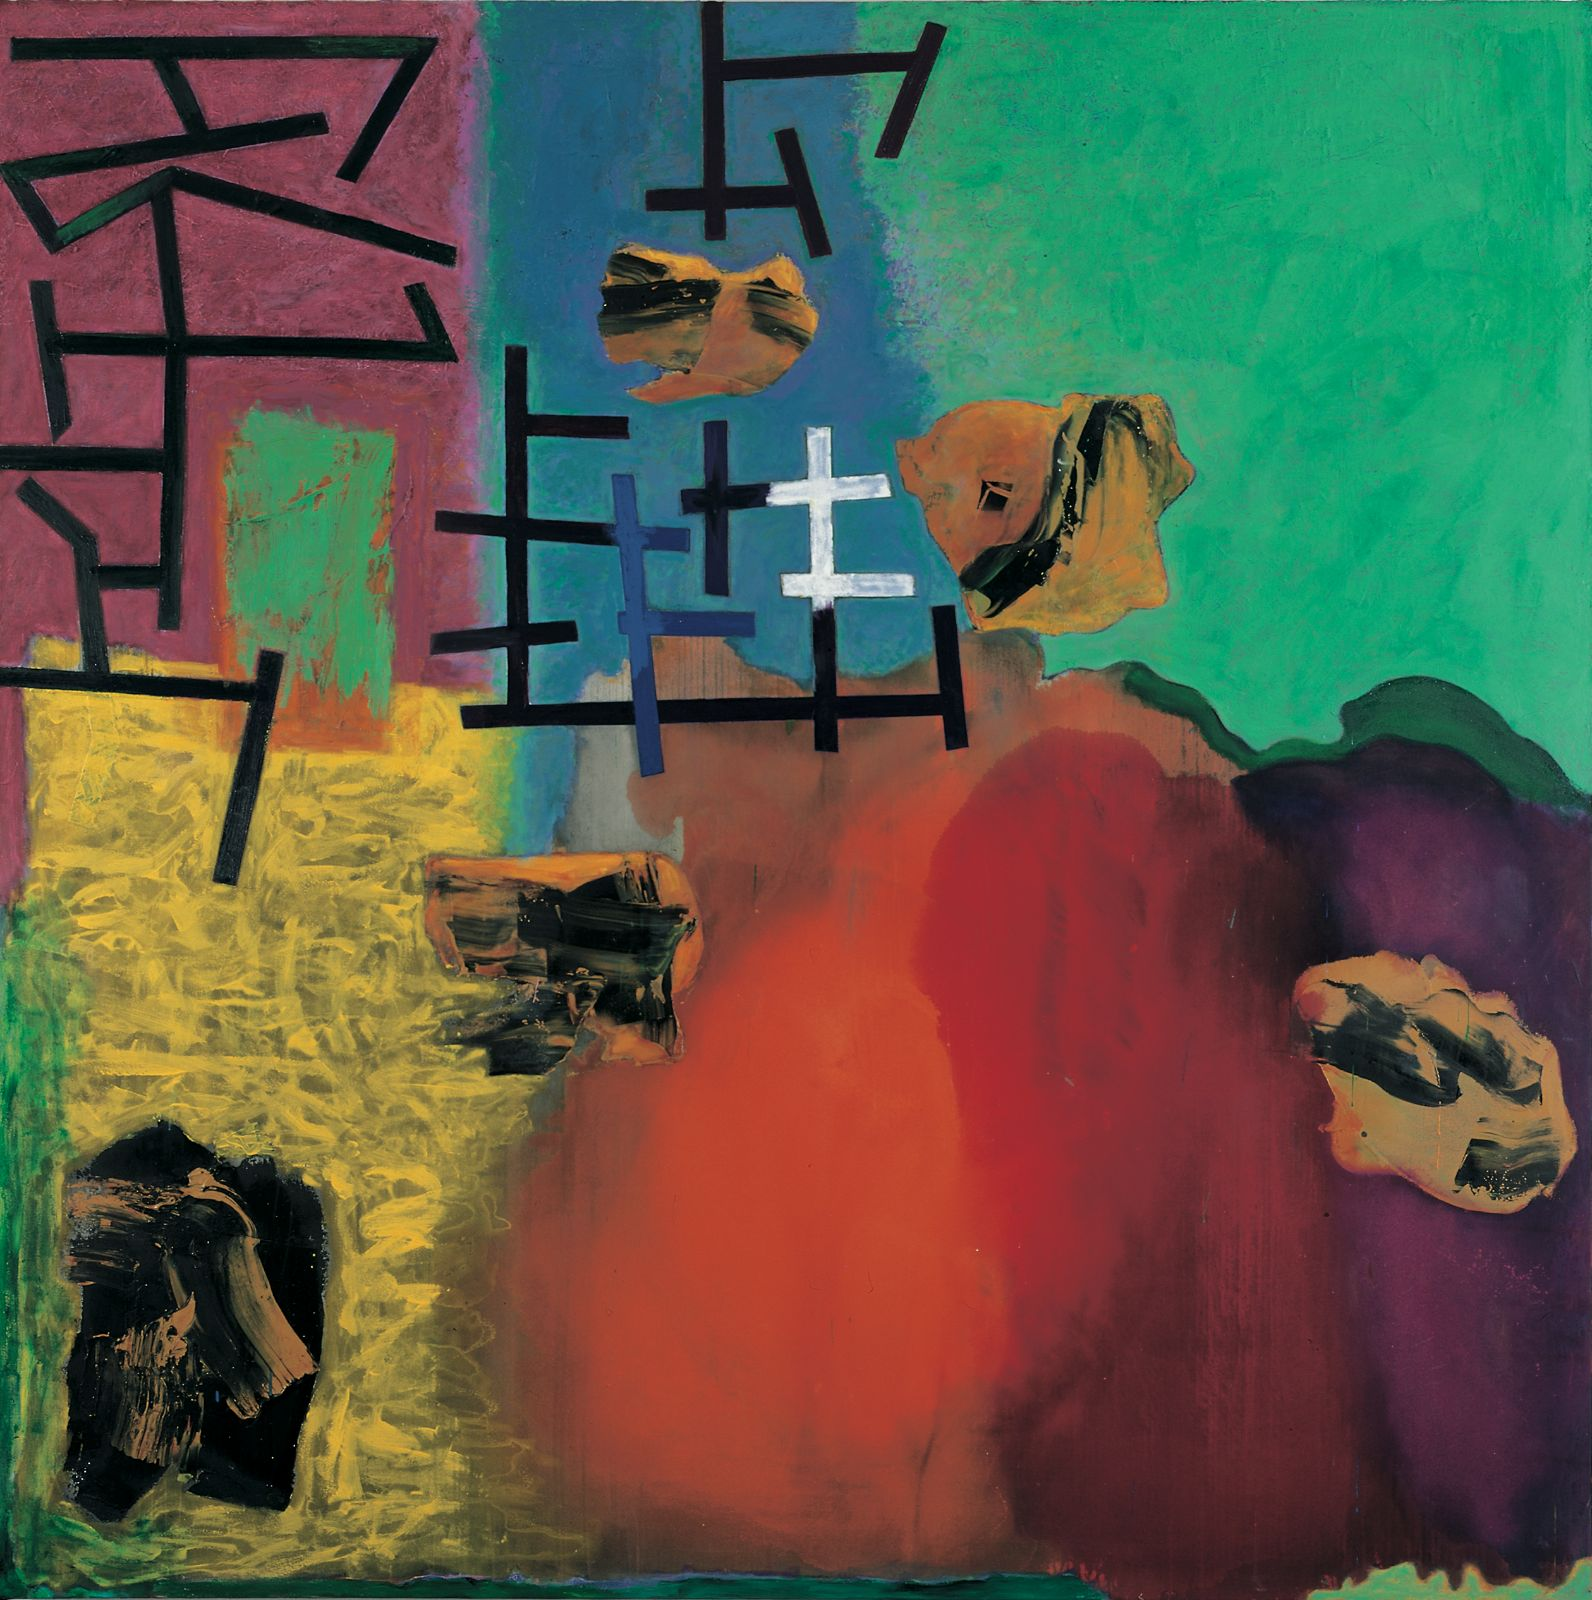 Pompong, 1997-99, oil and acrylic on canvas, 240 x 240 cm